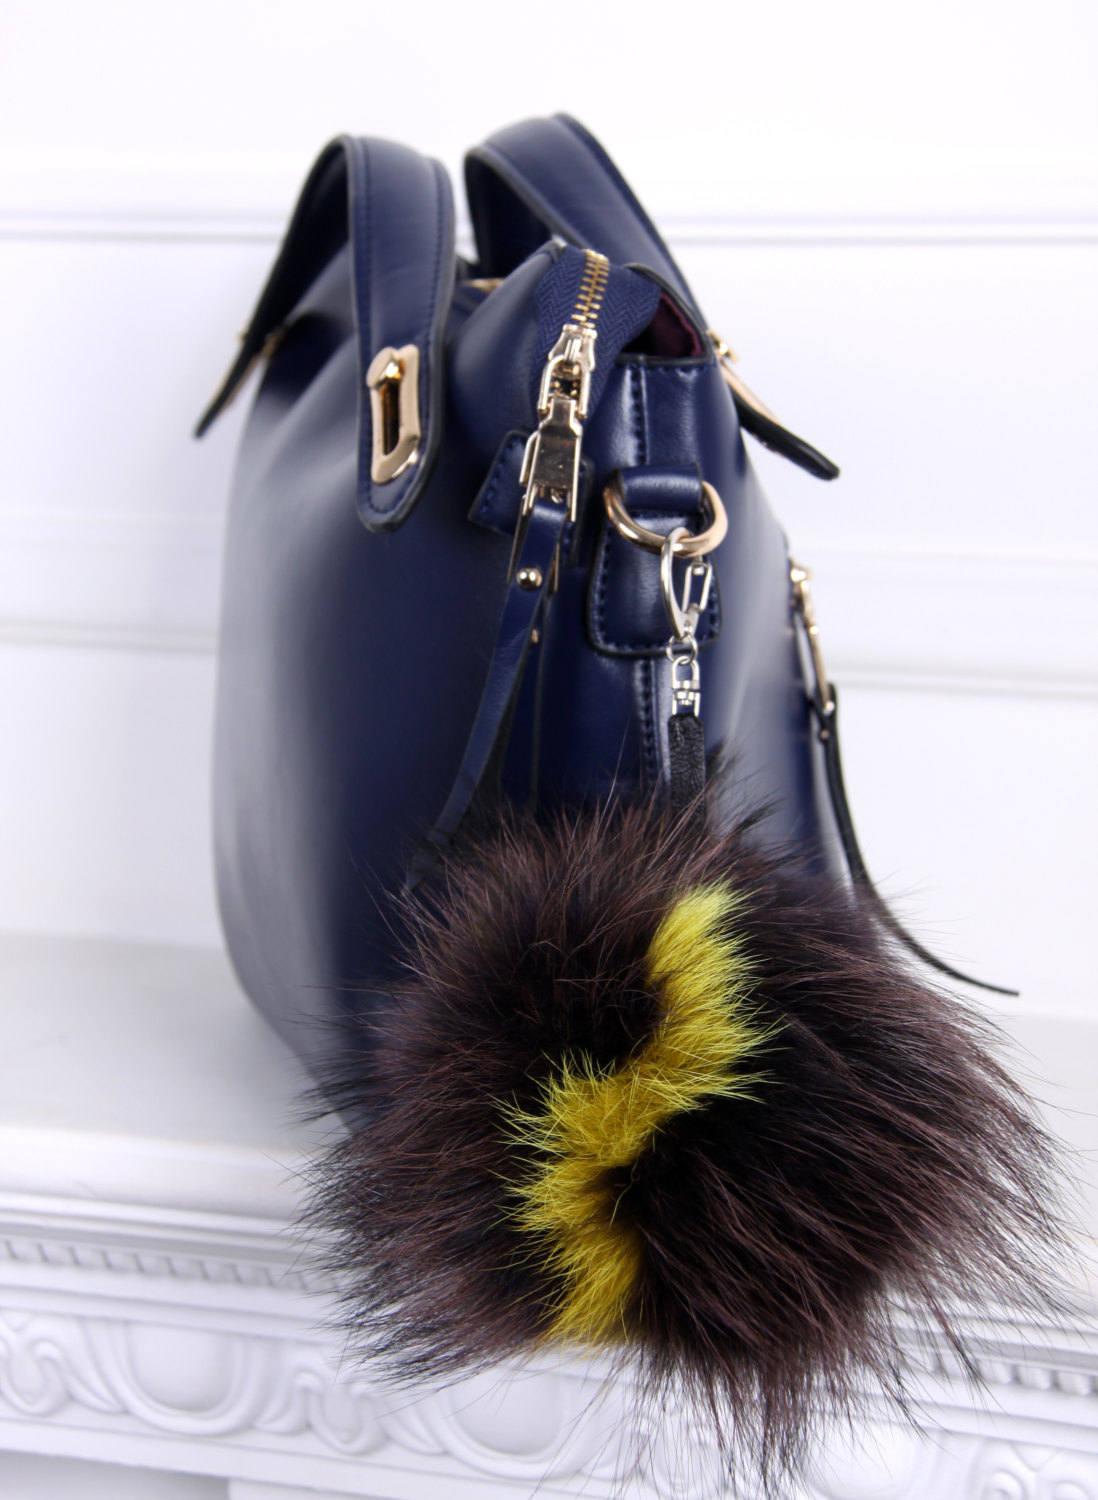 Fur Bag Charm Fur Keychain Fur Pom and 50 similar items. Il  fullxfull.1306123335 fkgp ffe350a8c72ae